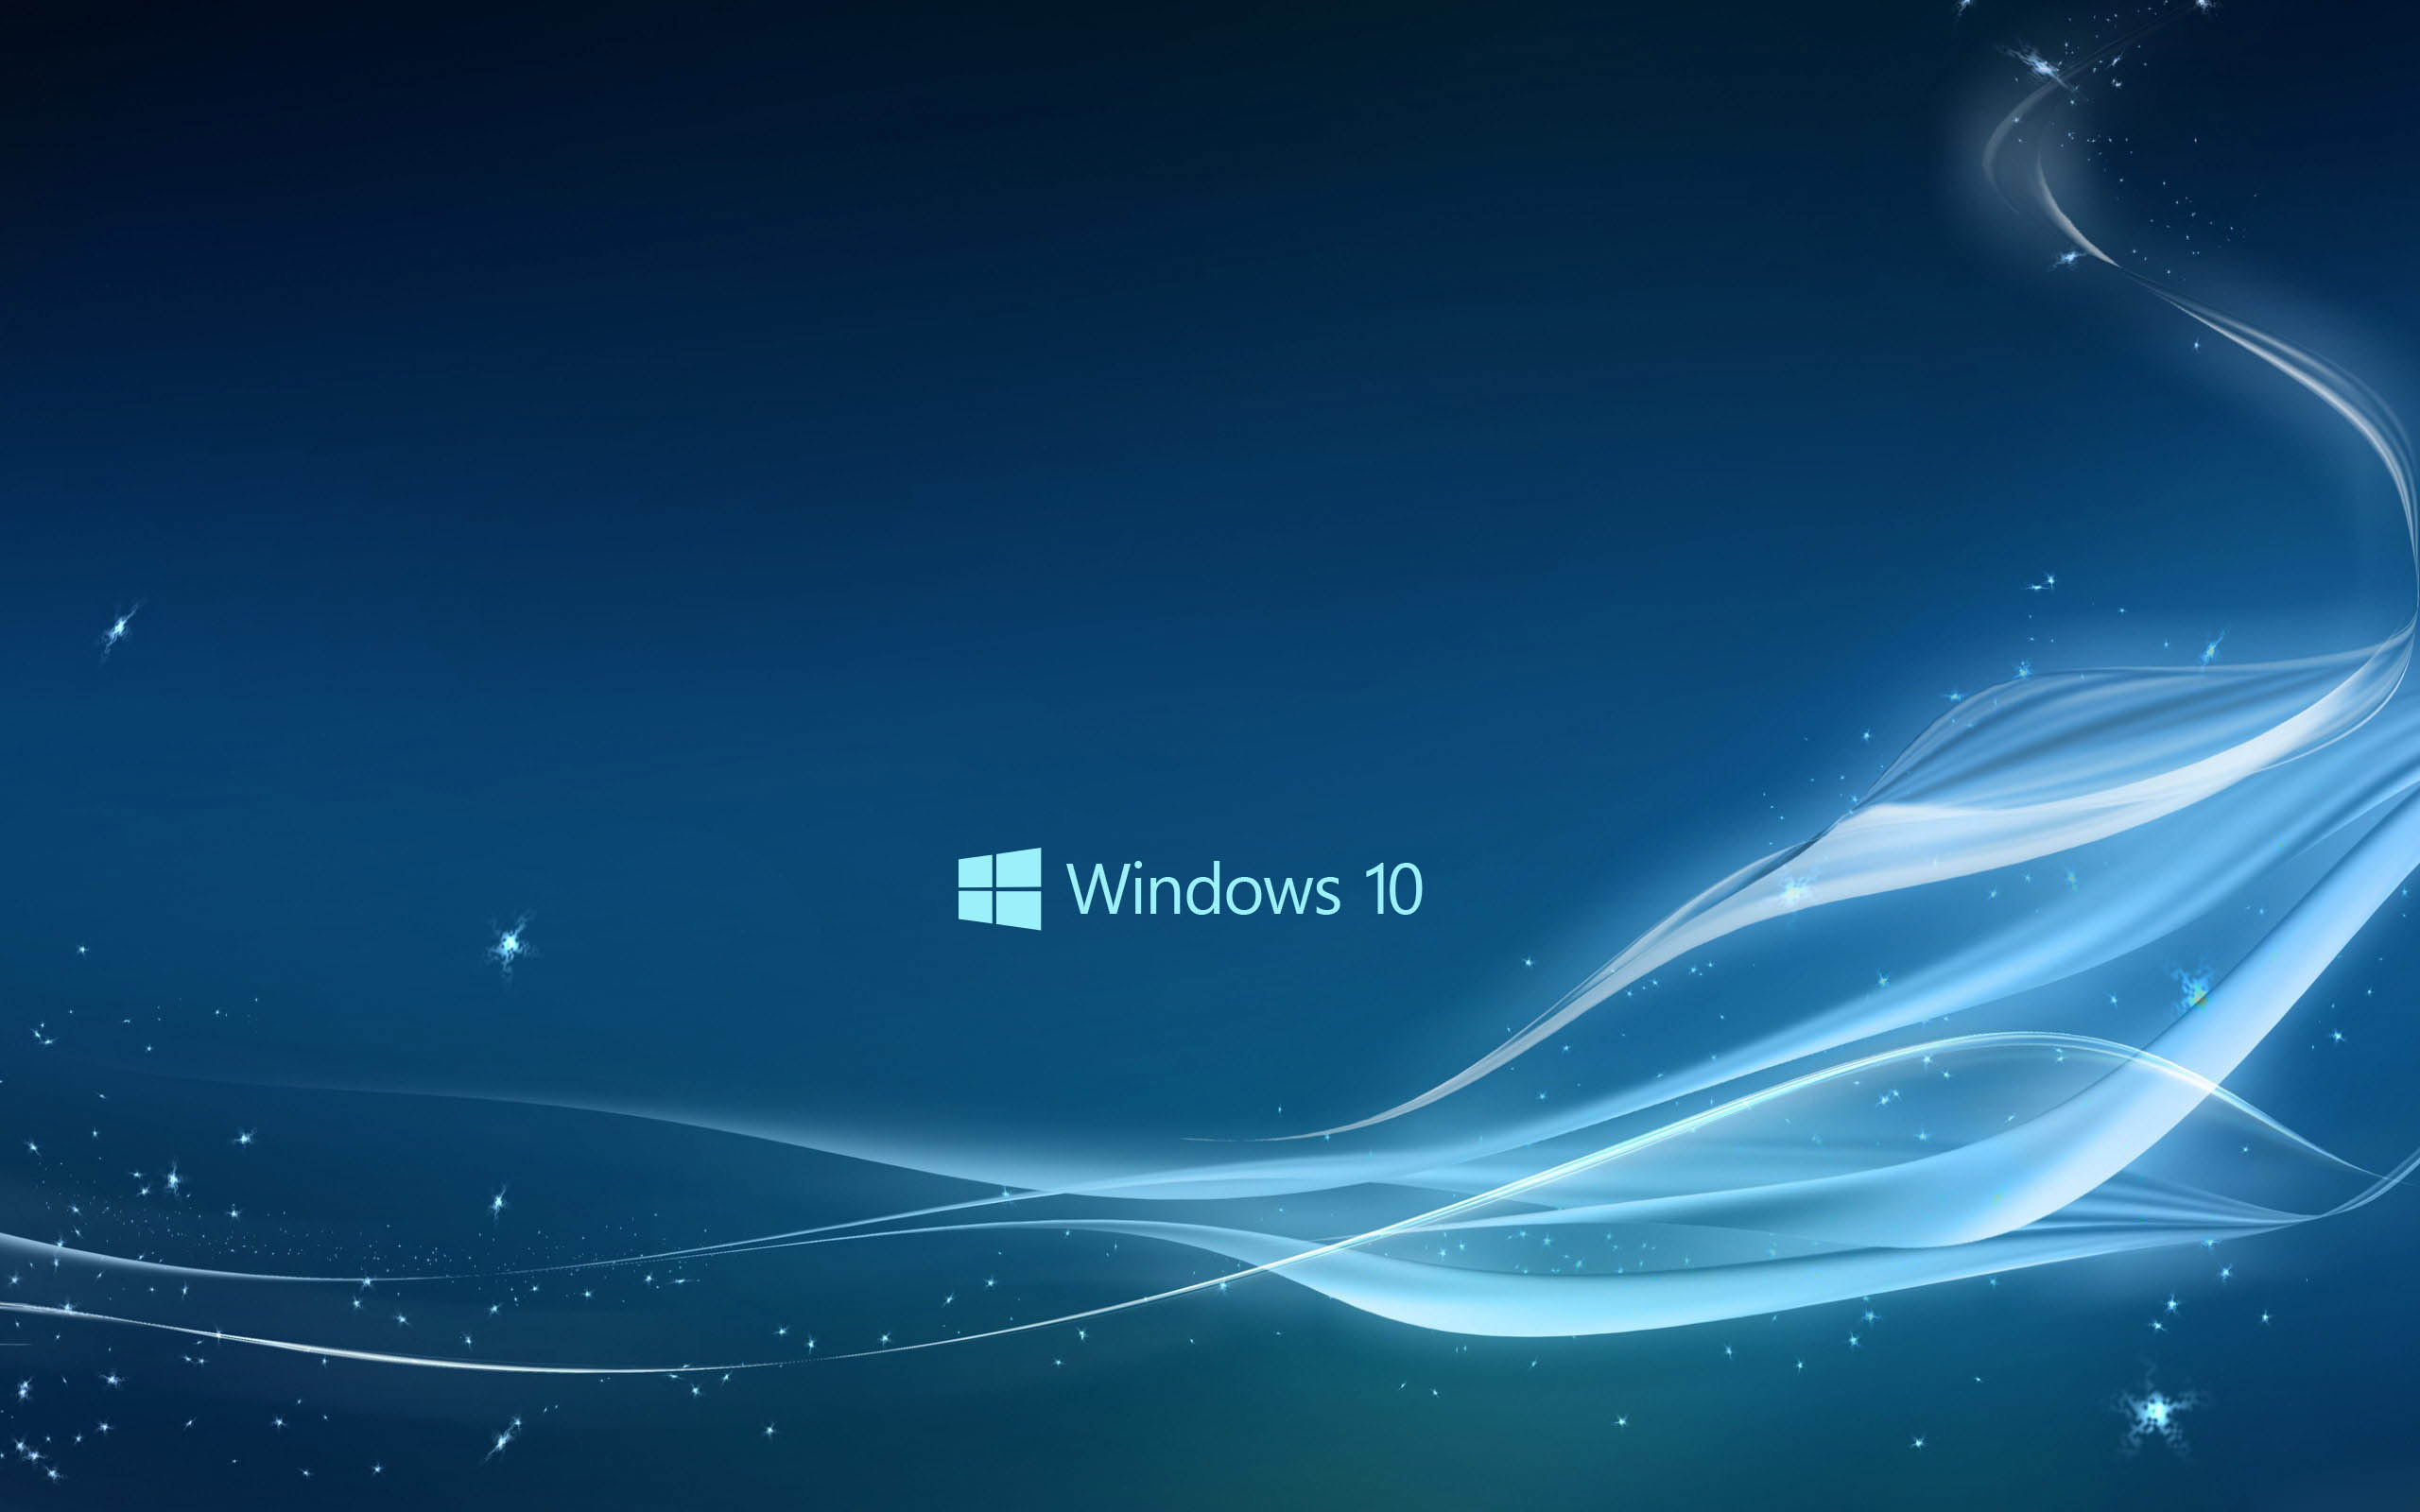 Windows 10 lockscreen wallpaper